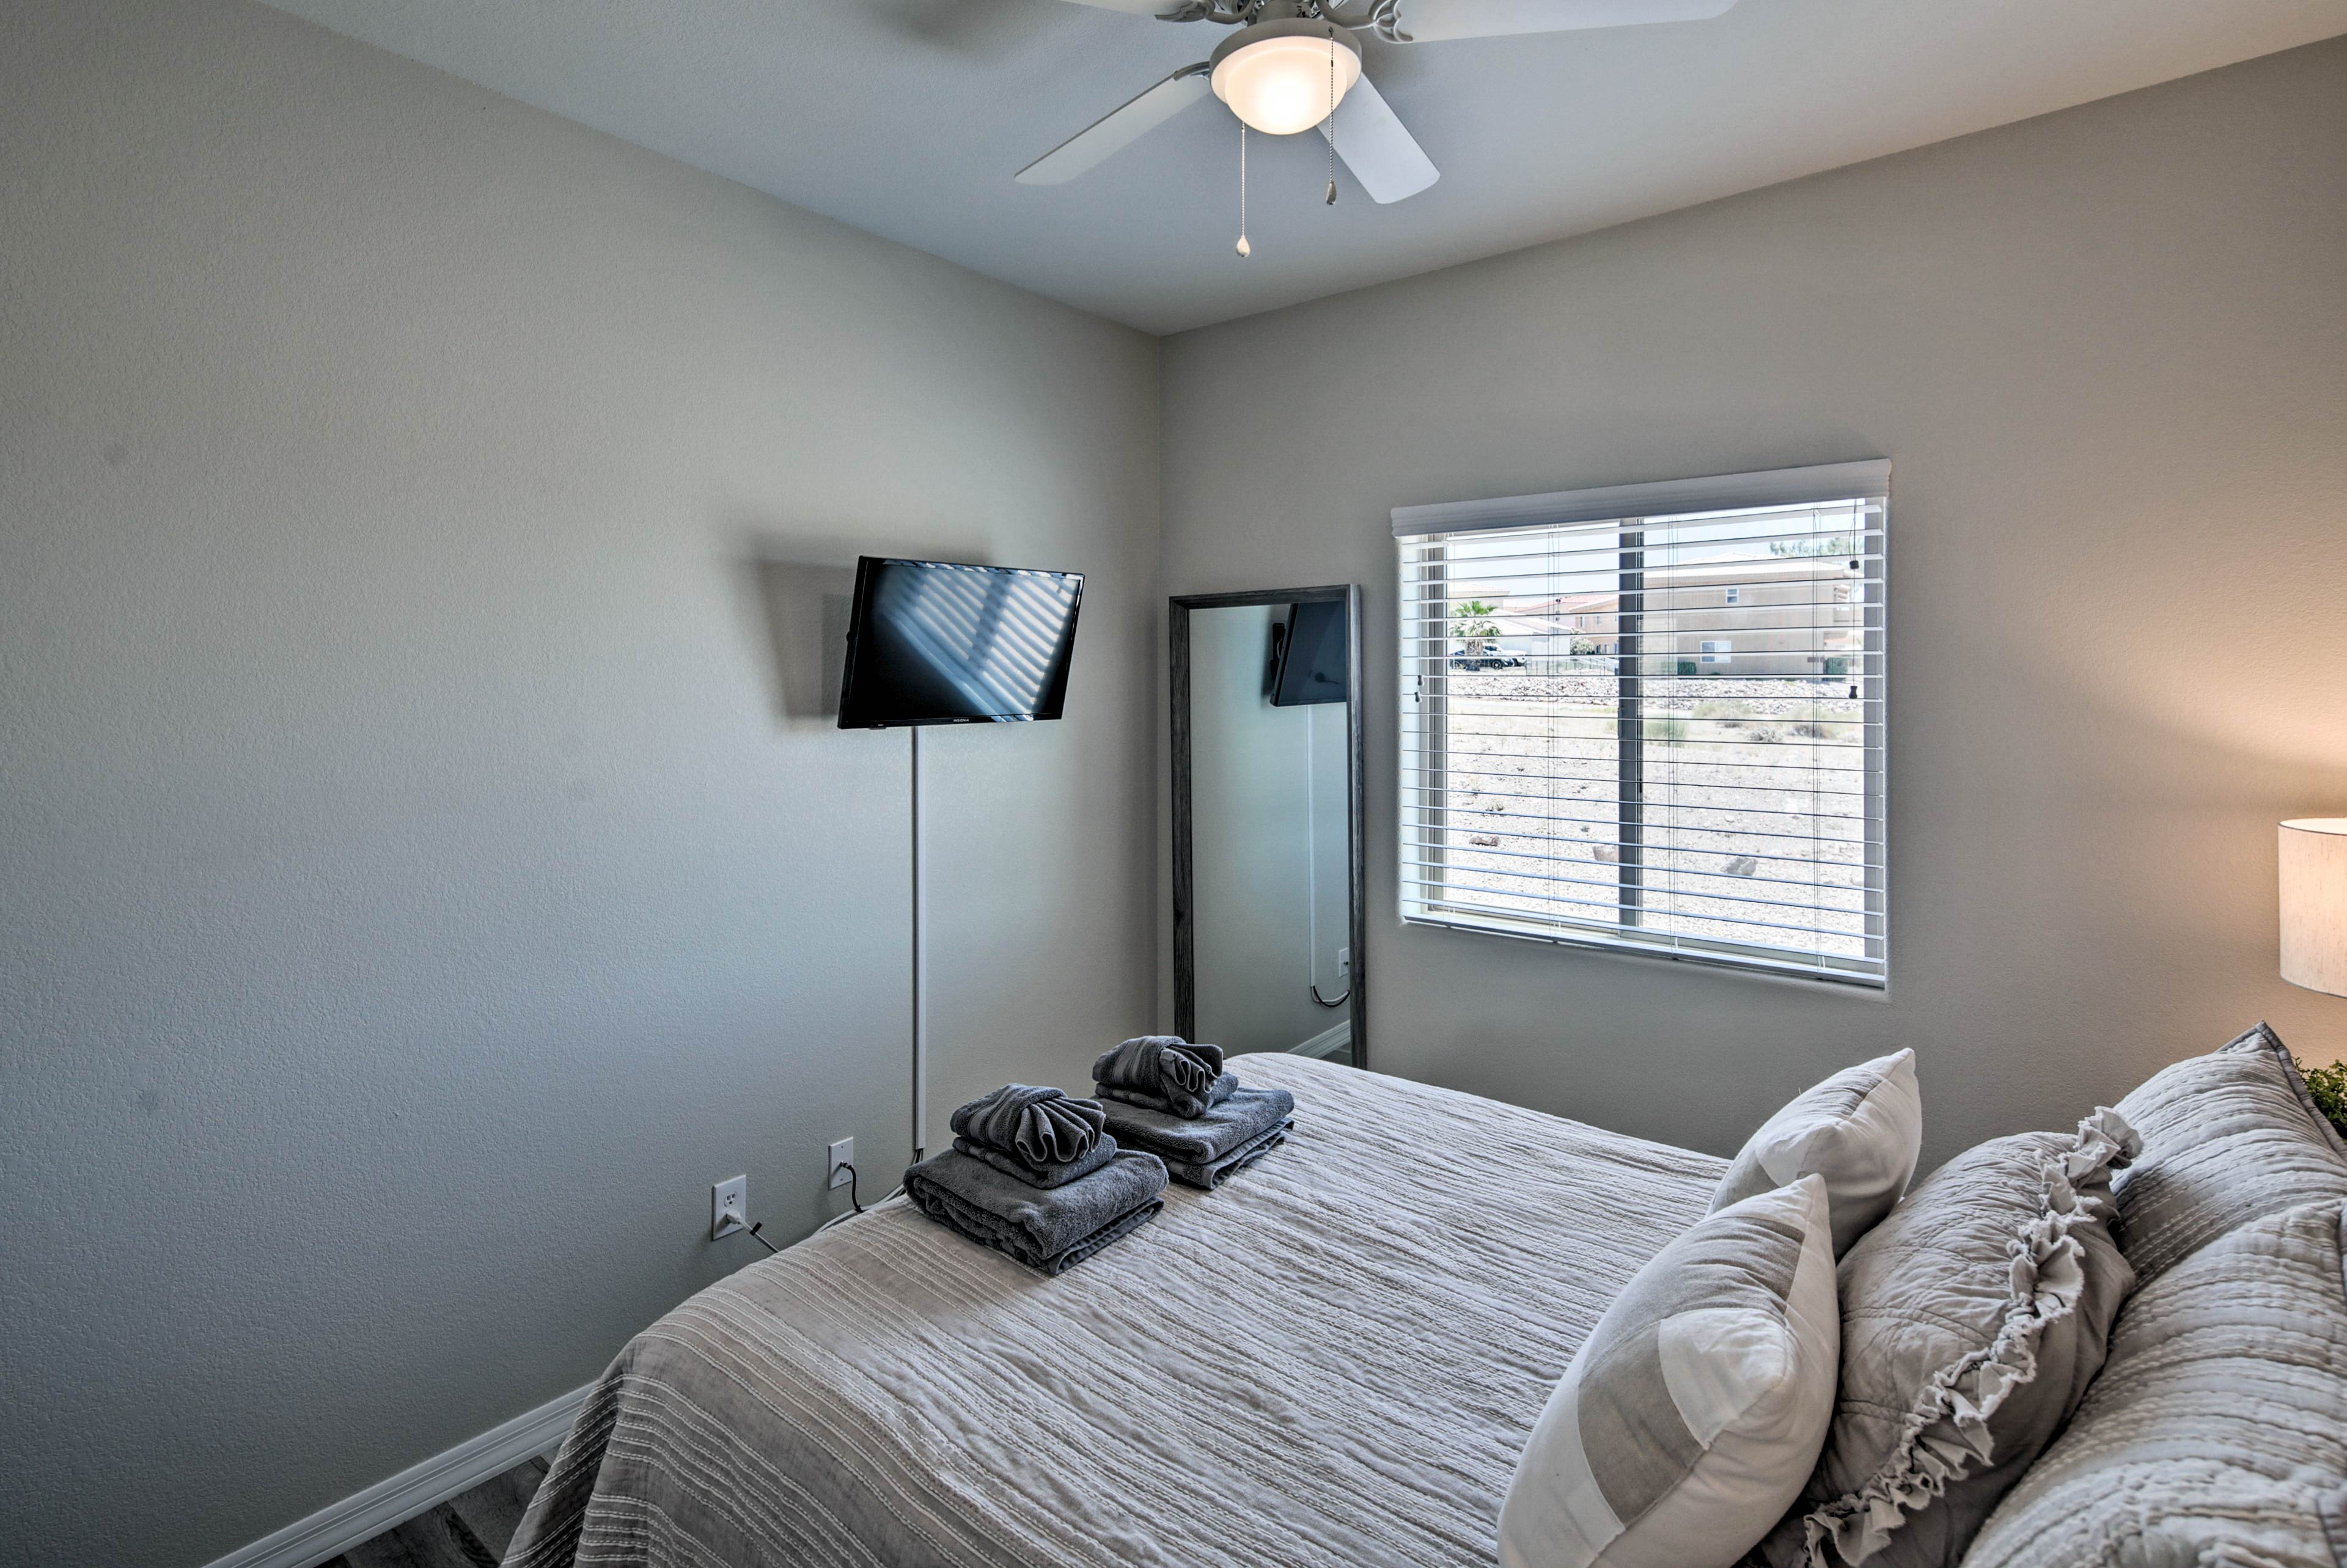 This room also has a flat-screen Smart TV.